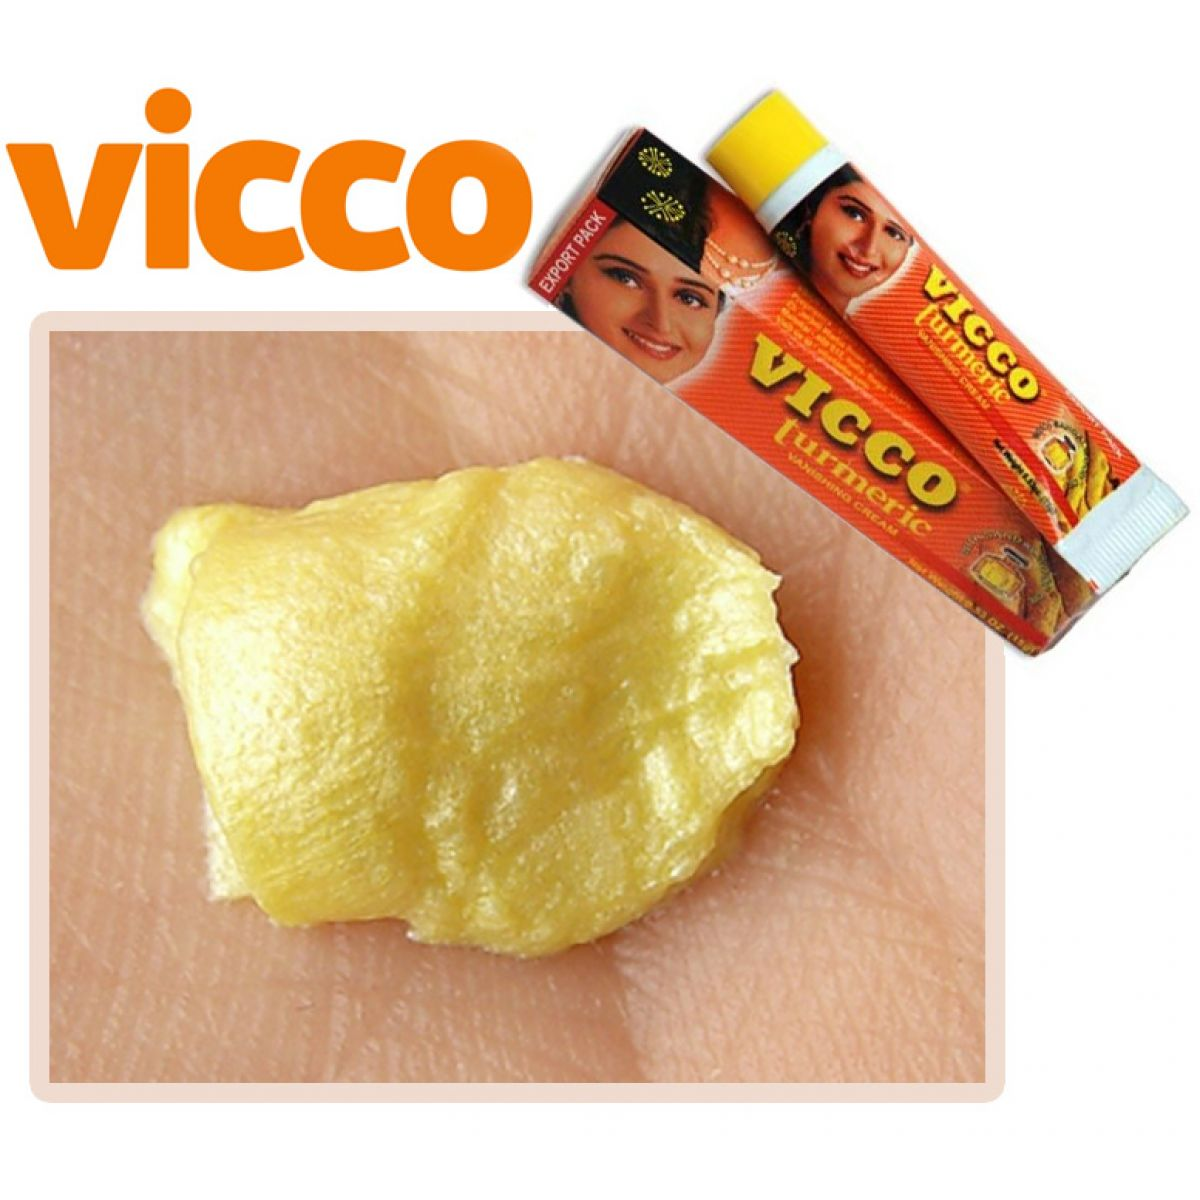 Image result for vicco